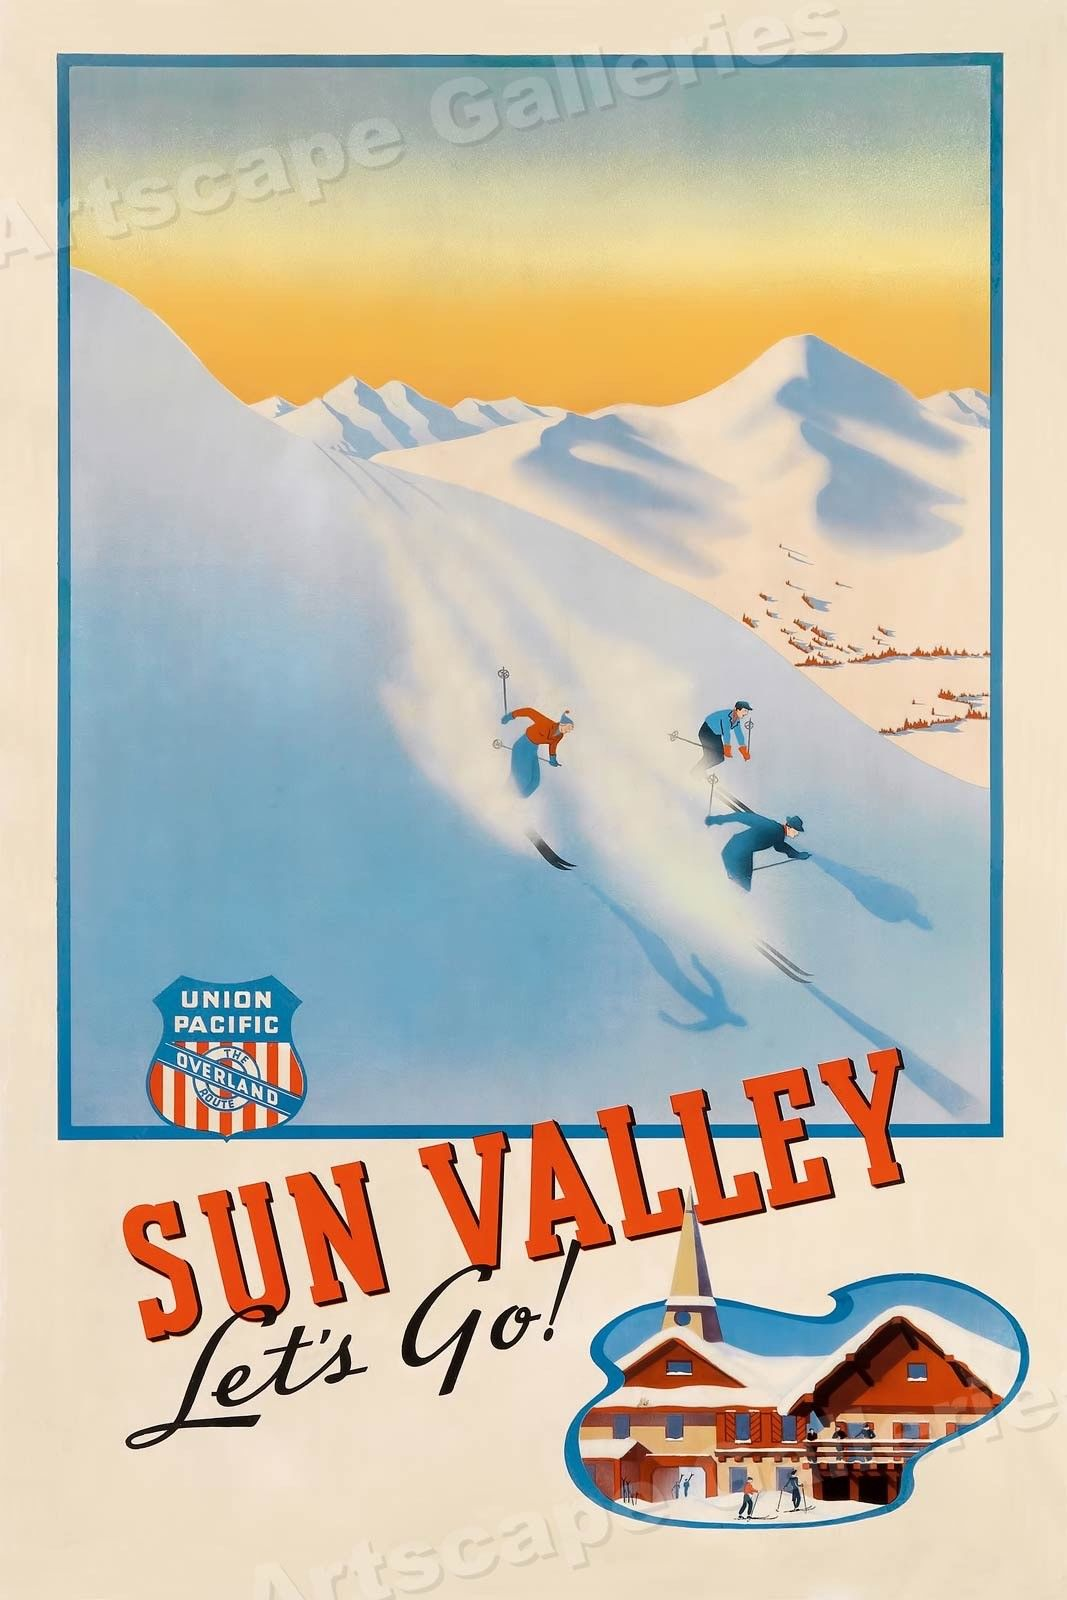 5a9fe273bf0  9.31 - 1940S Sun Valley Ski Resort Union Pacific Rr Vintage Skiing Snow  Print - 16X24  ebay  Collectibles